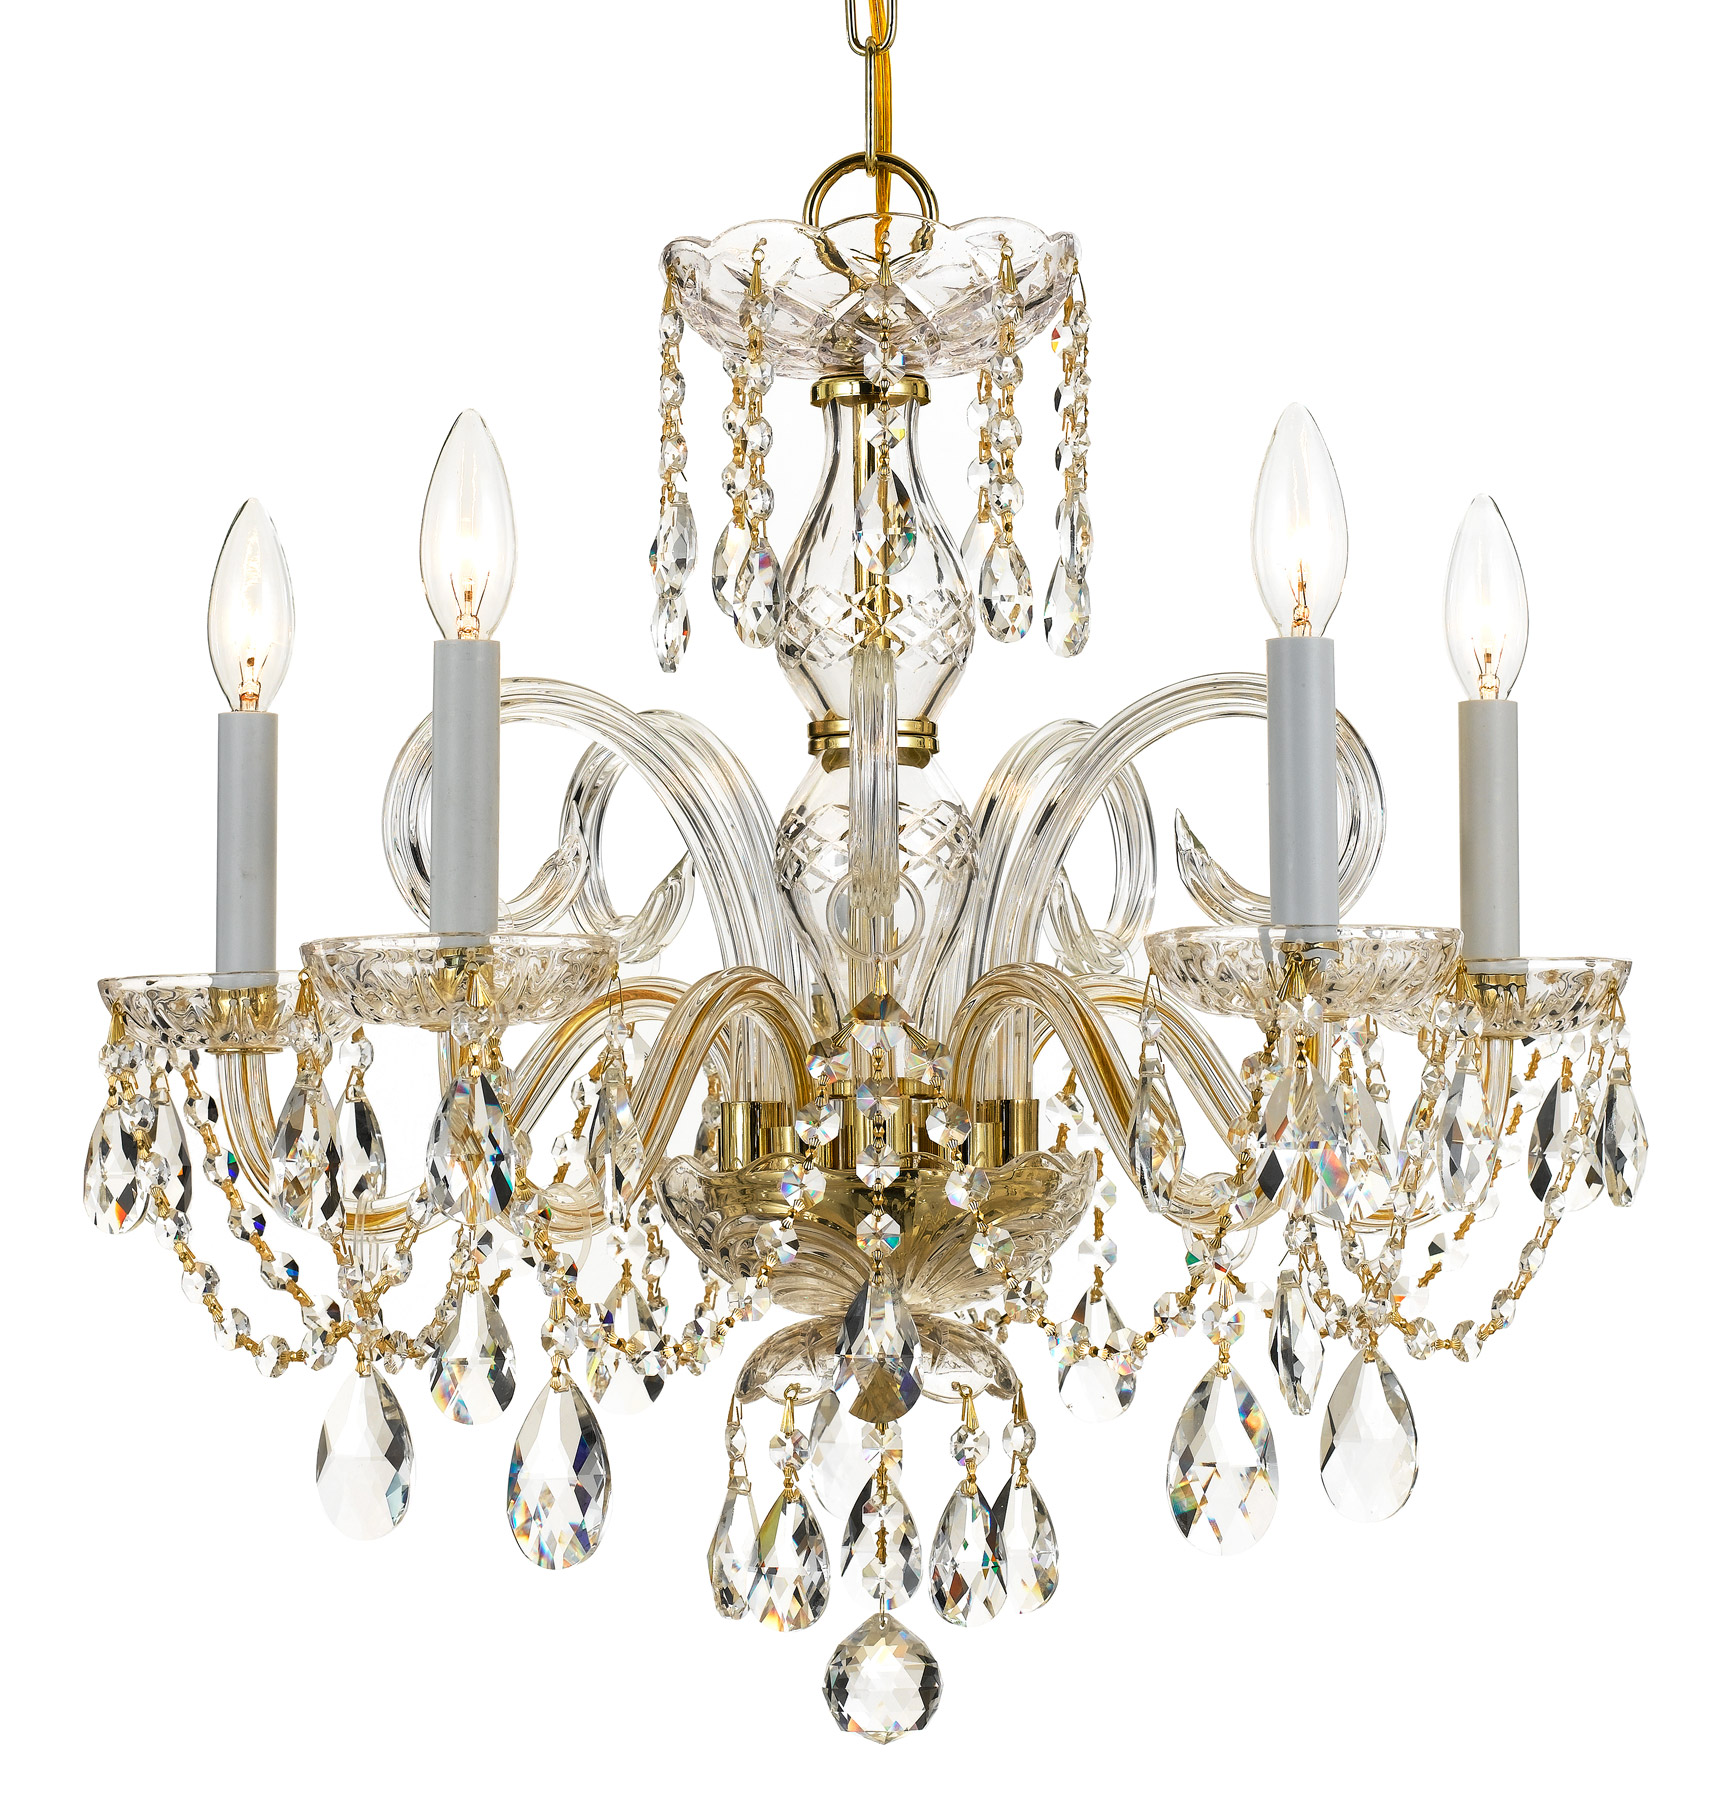 Crystorama 1005 pb cl mwp crystal 5 light crystal brass chandelier mozeypictures Images